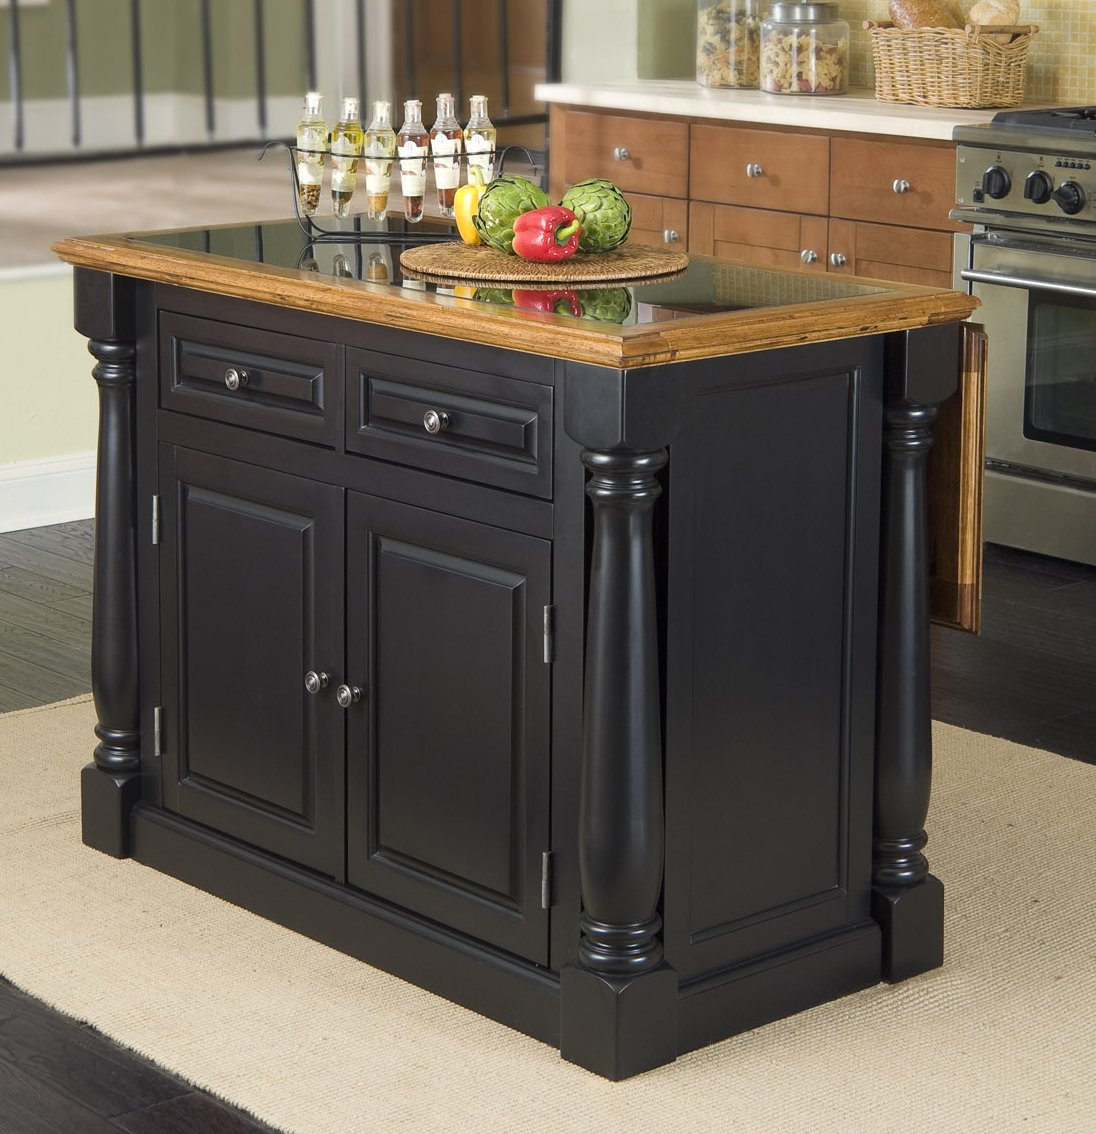 Monarch Black/Distressed Oak Kitchen Island with Granite Top by Home Styles